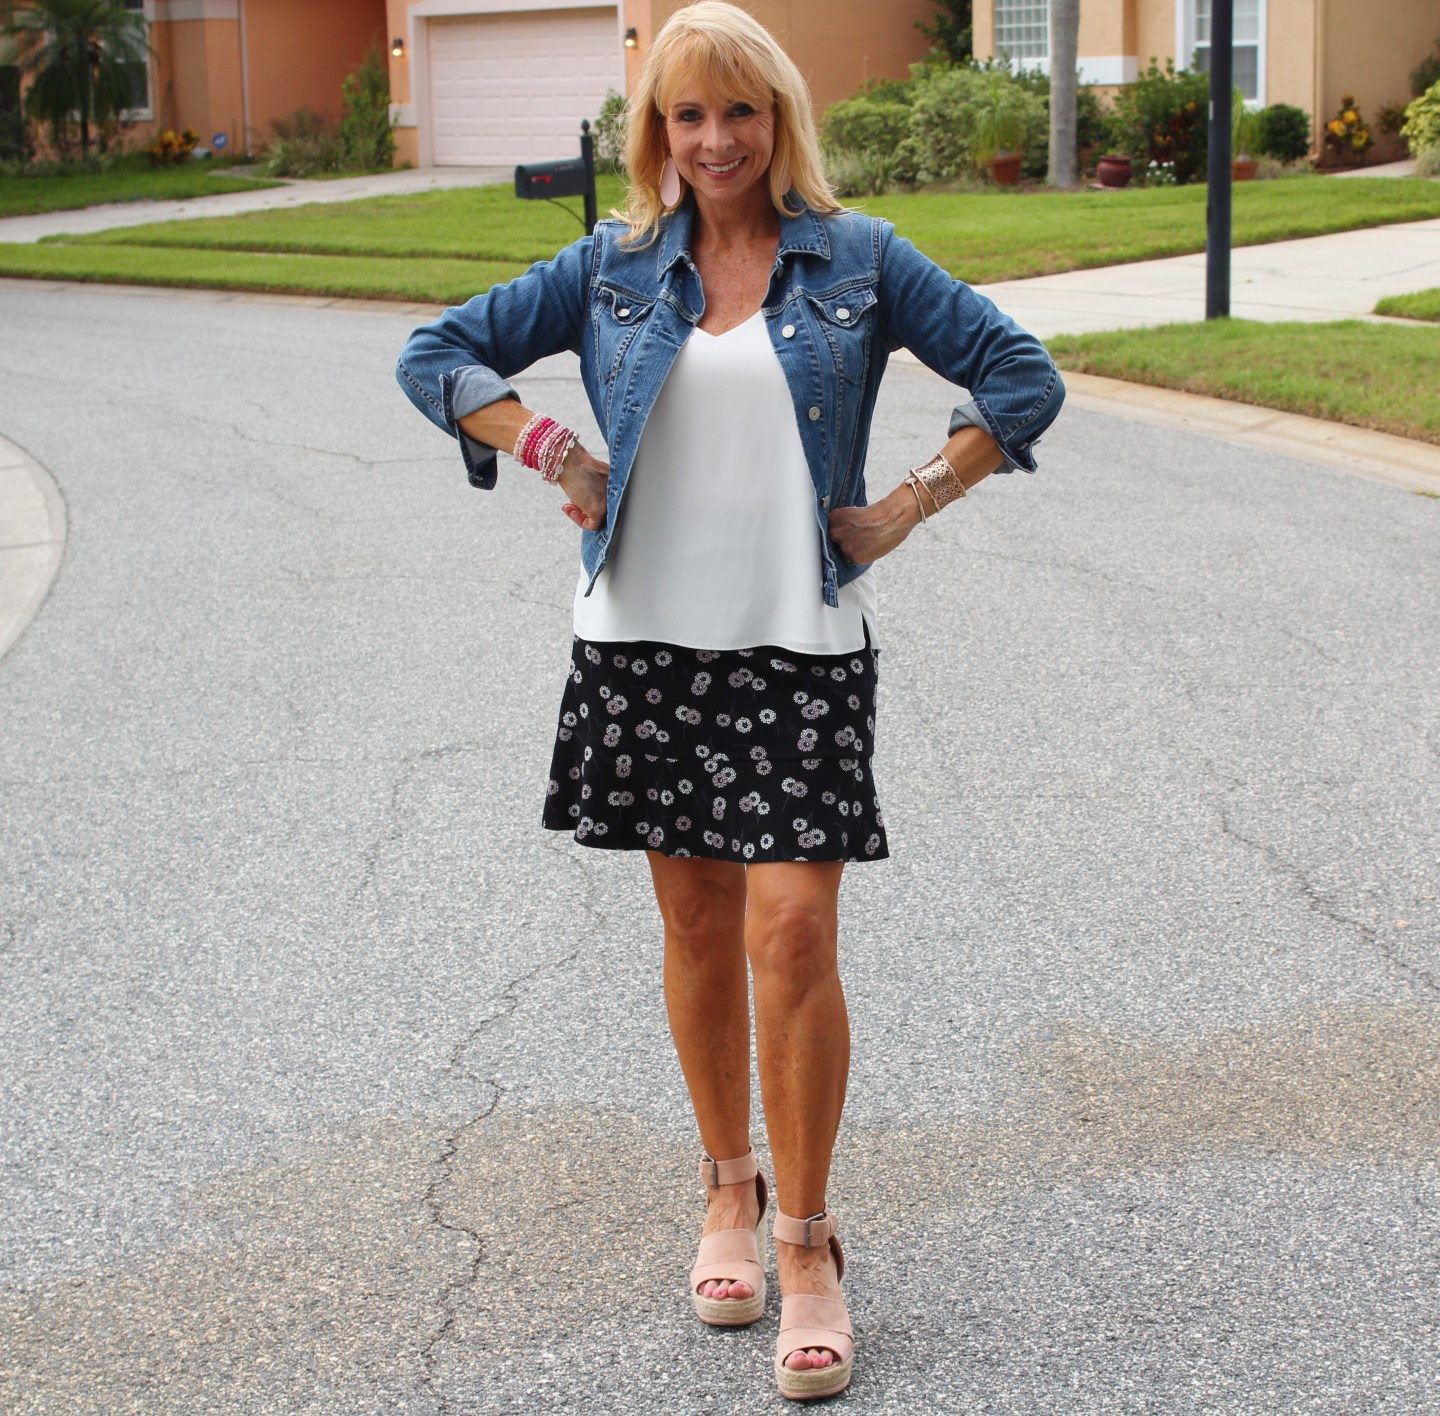 Loft skirt, cami, denim jacket, wedges